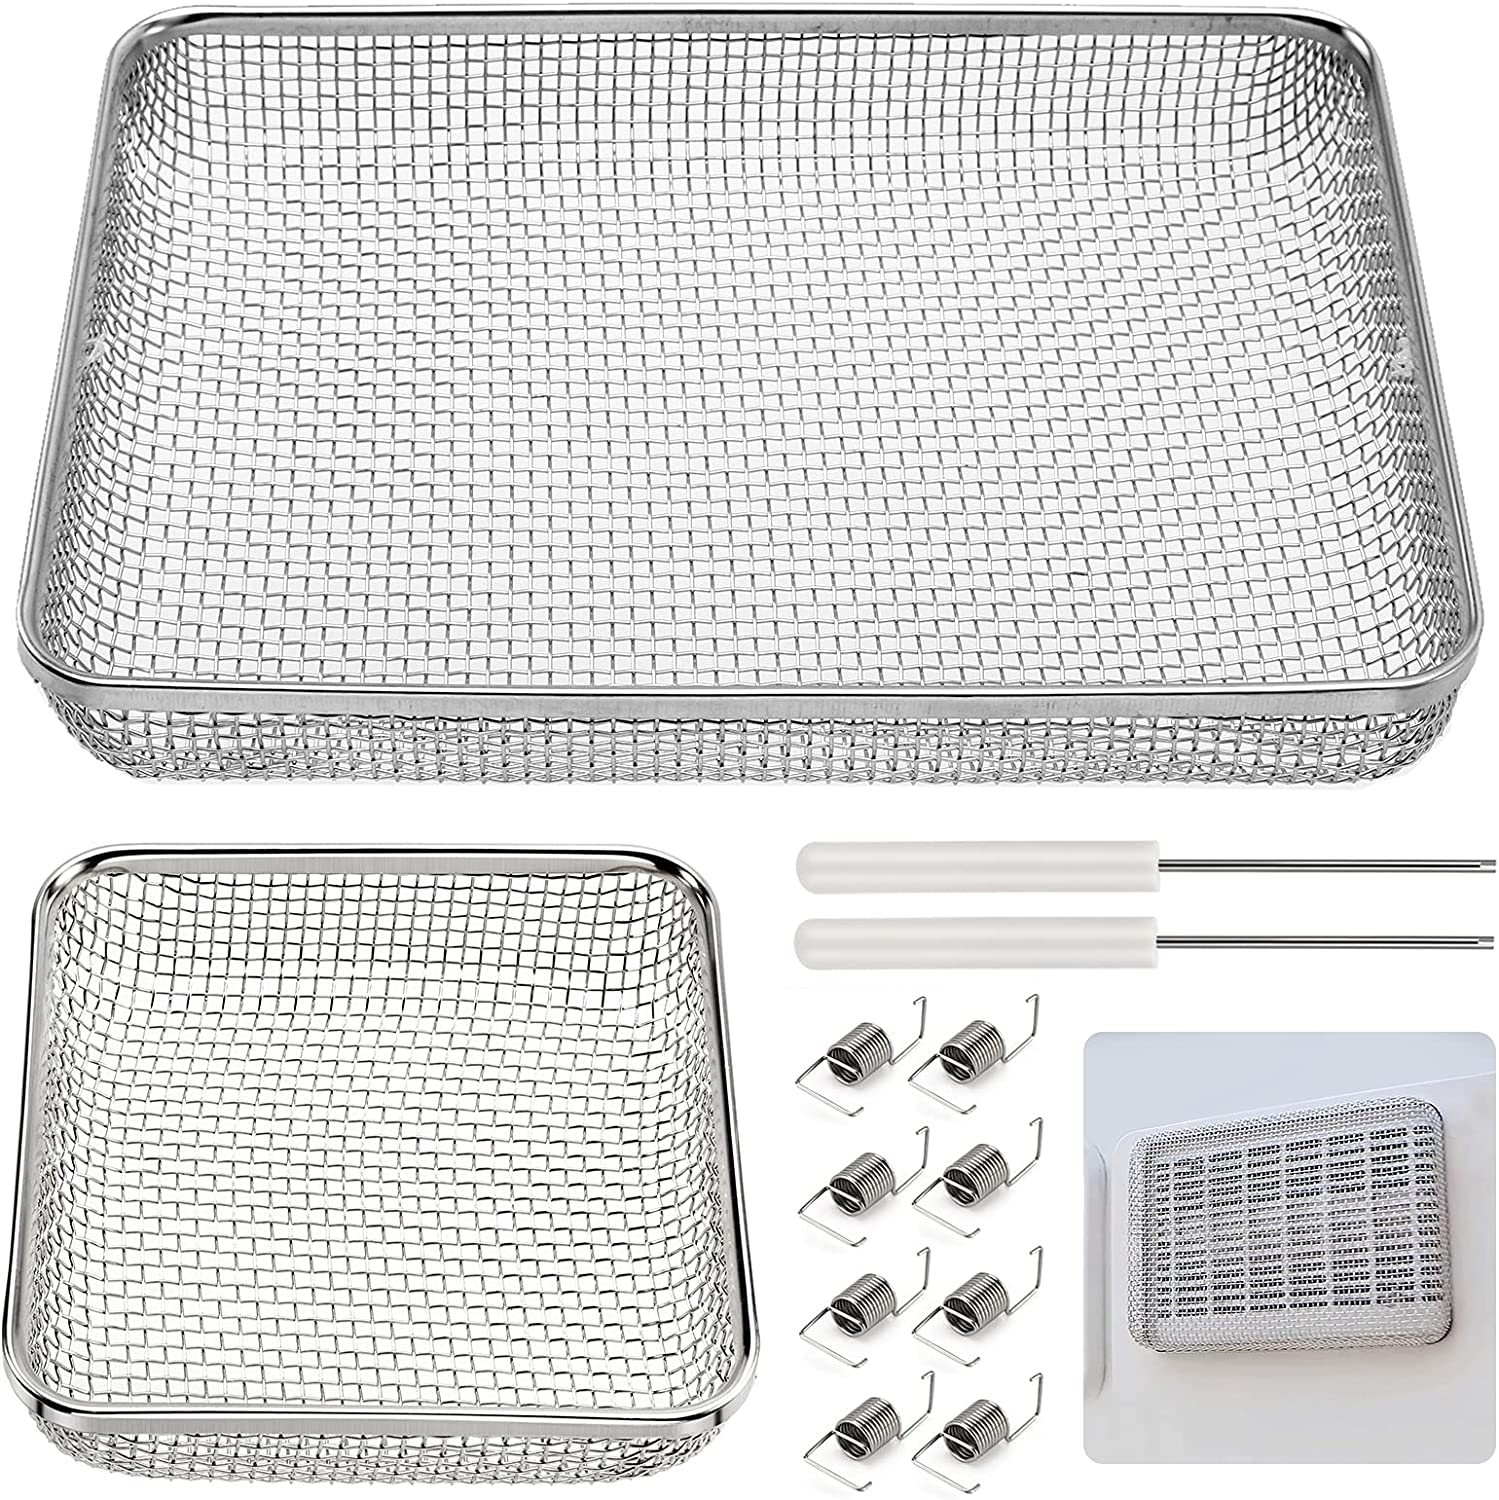 Kohree Cheap SALE Start Max 41% OFF RV Flying Insect Screen Furnace Bug Stainless For